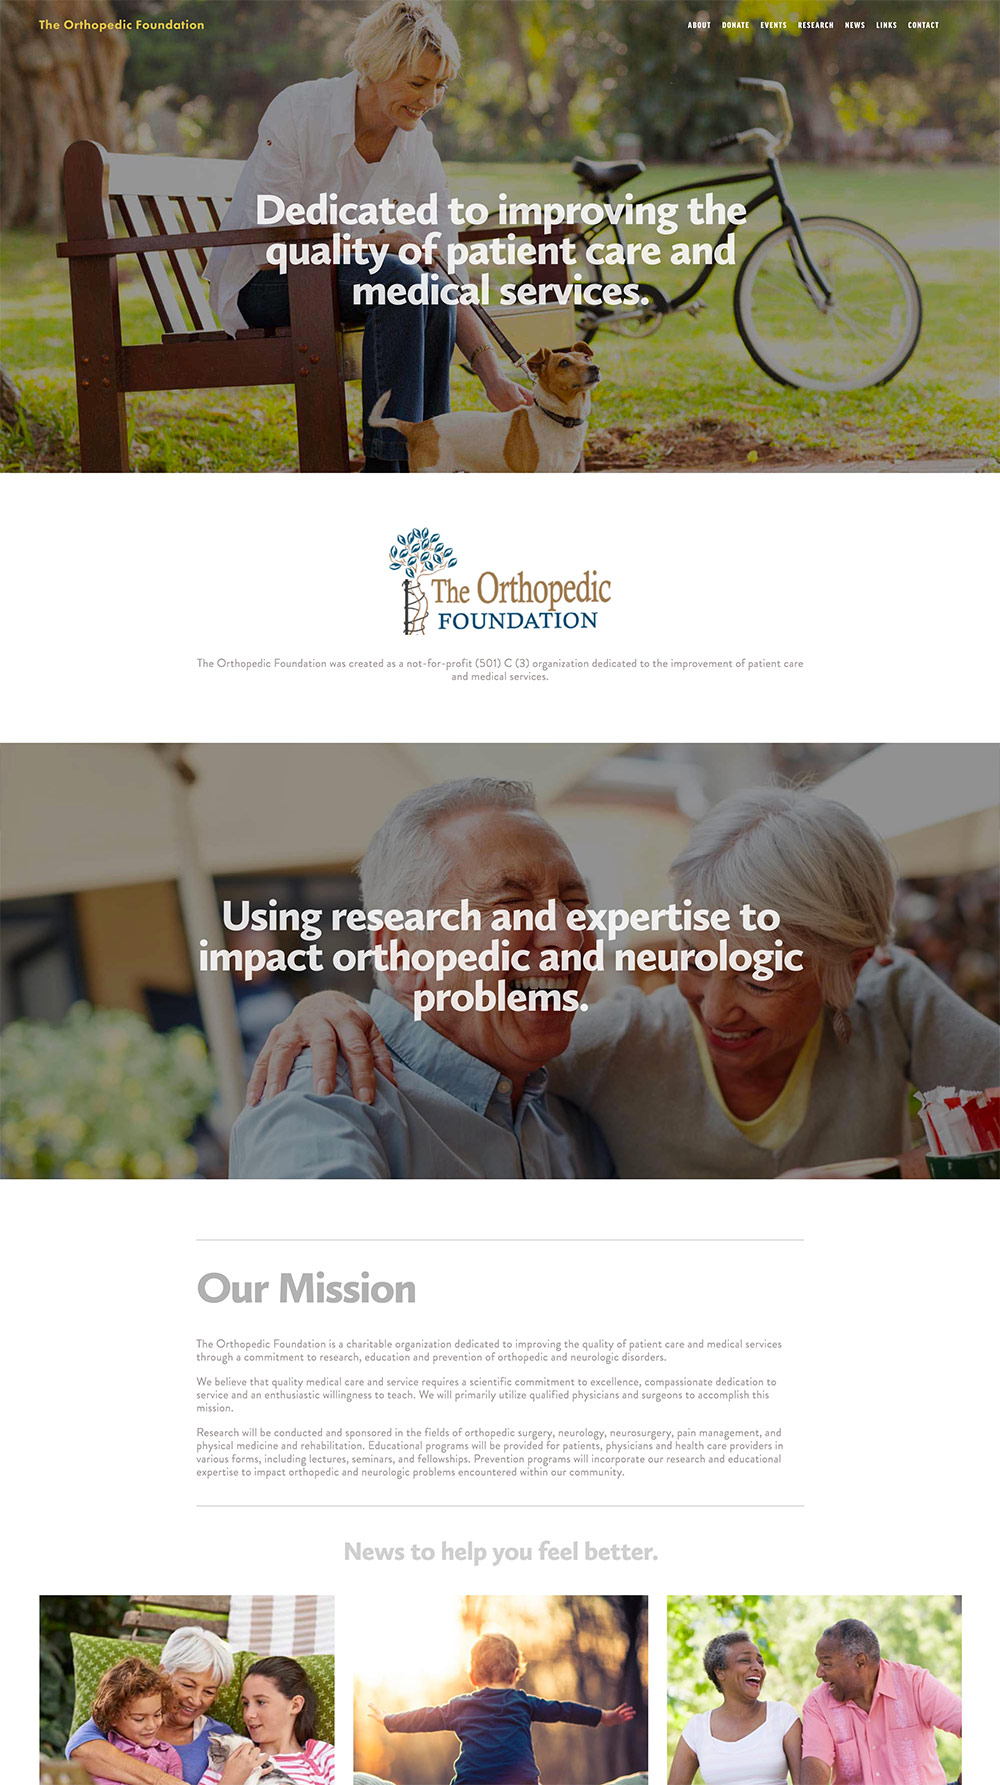 Orthopedic Foundation Website Design Example